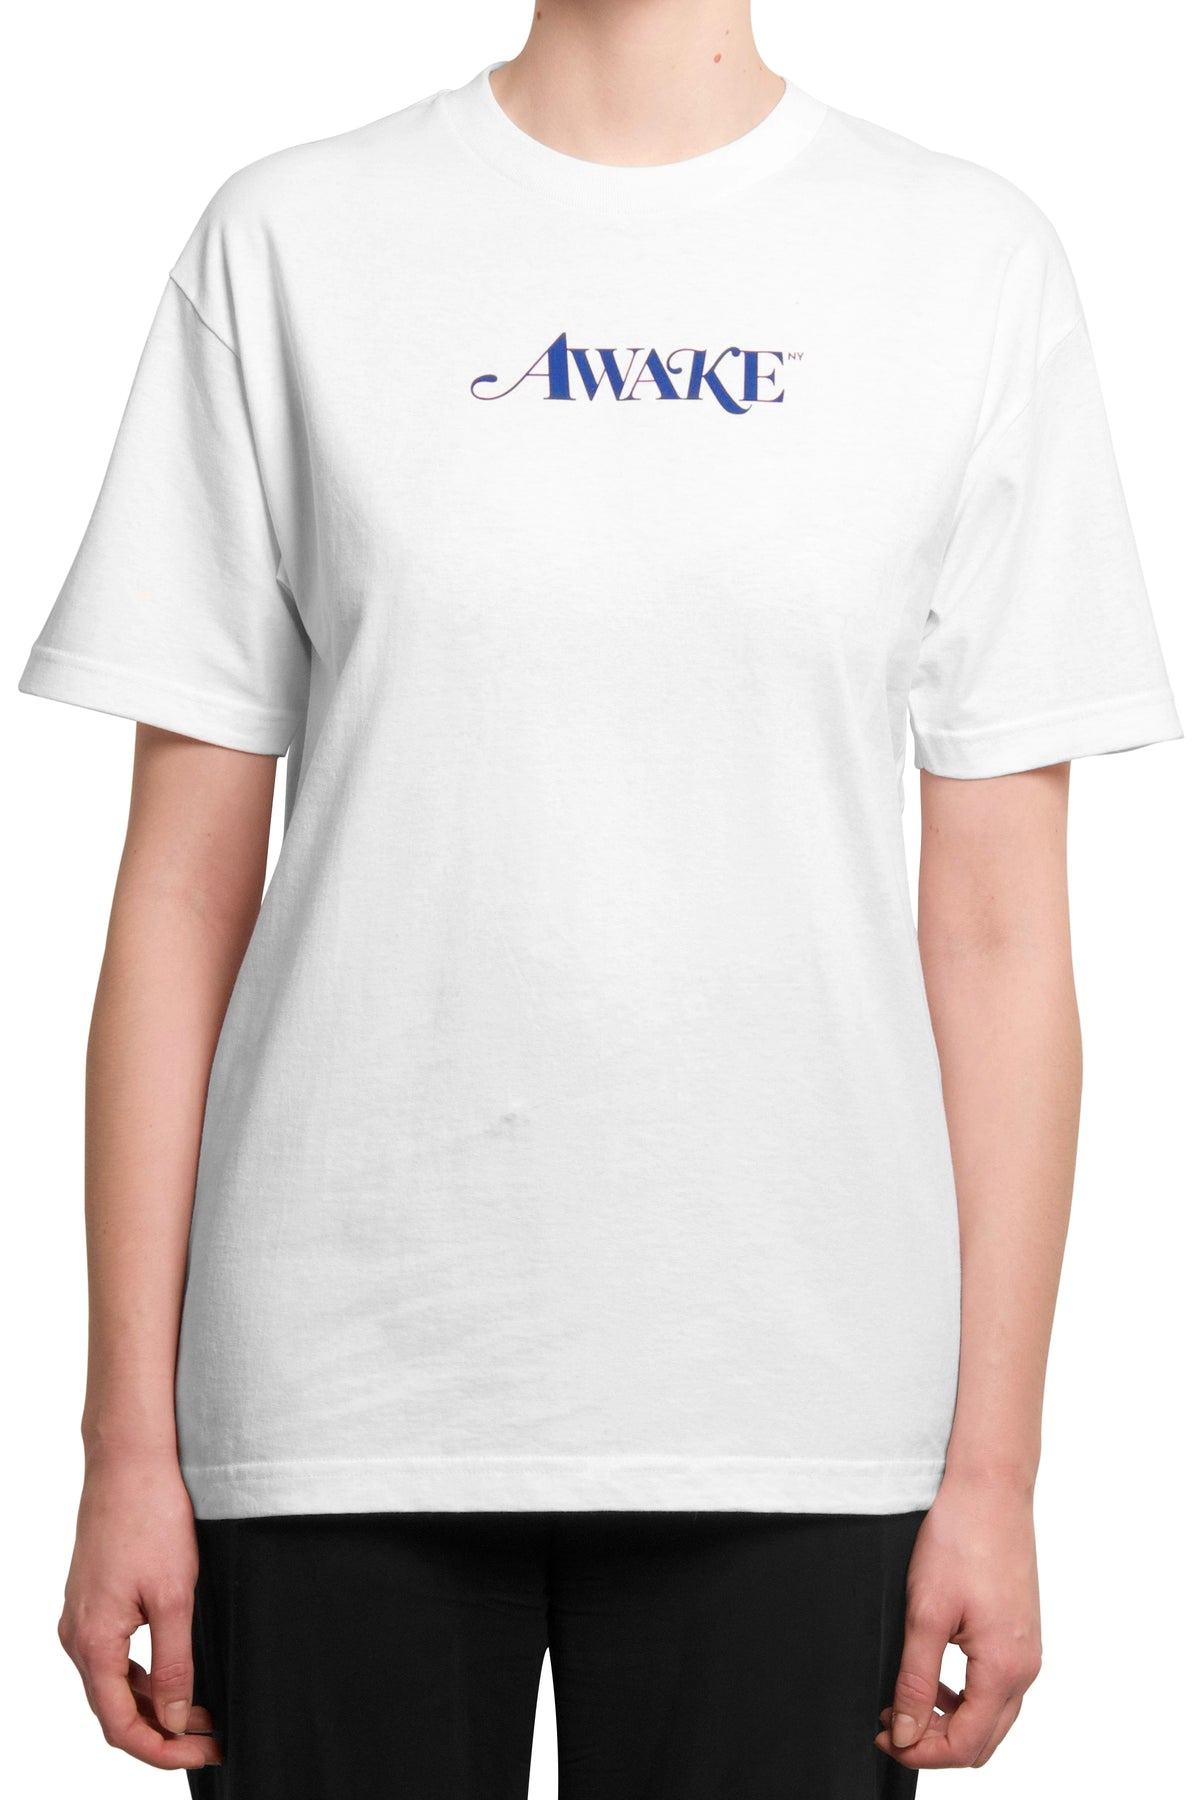 Awake Logo T-Shirt White - 032c